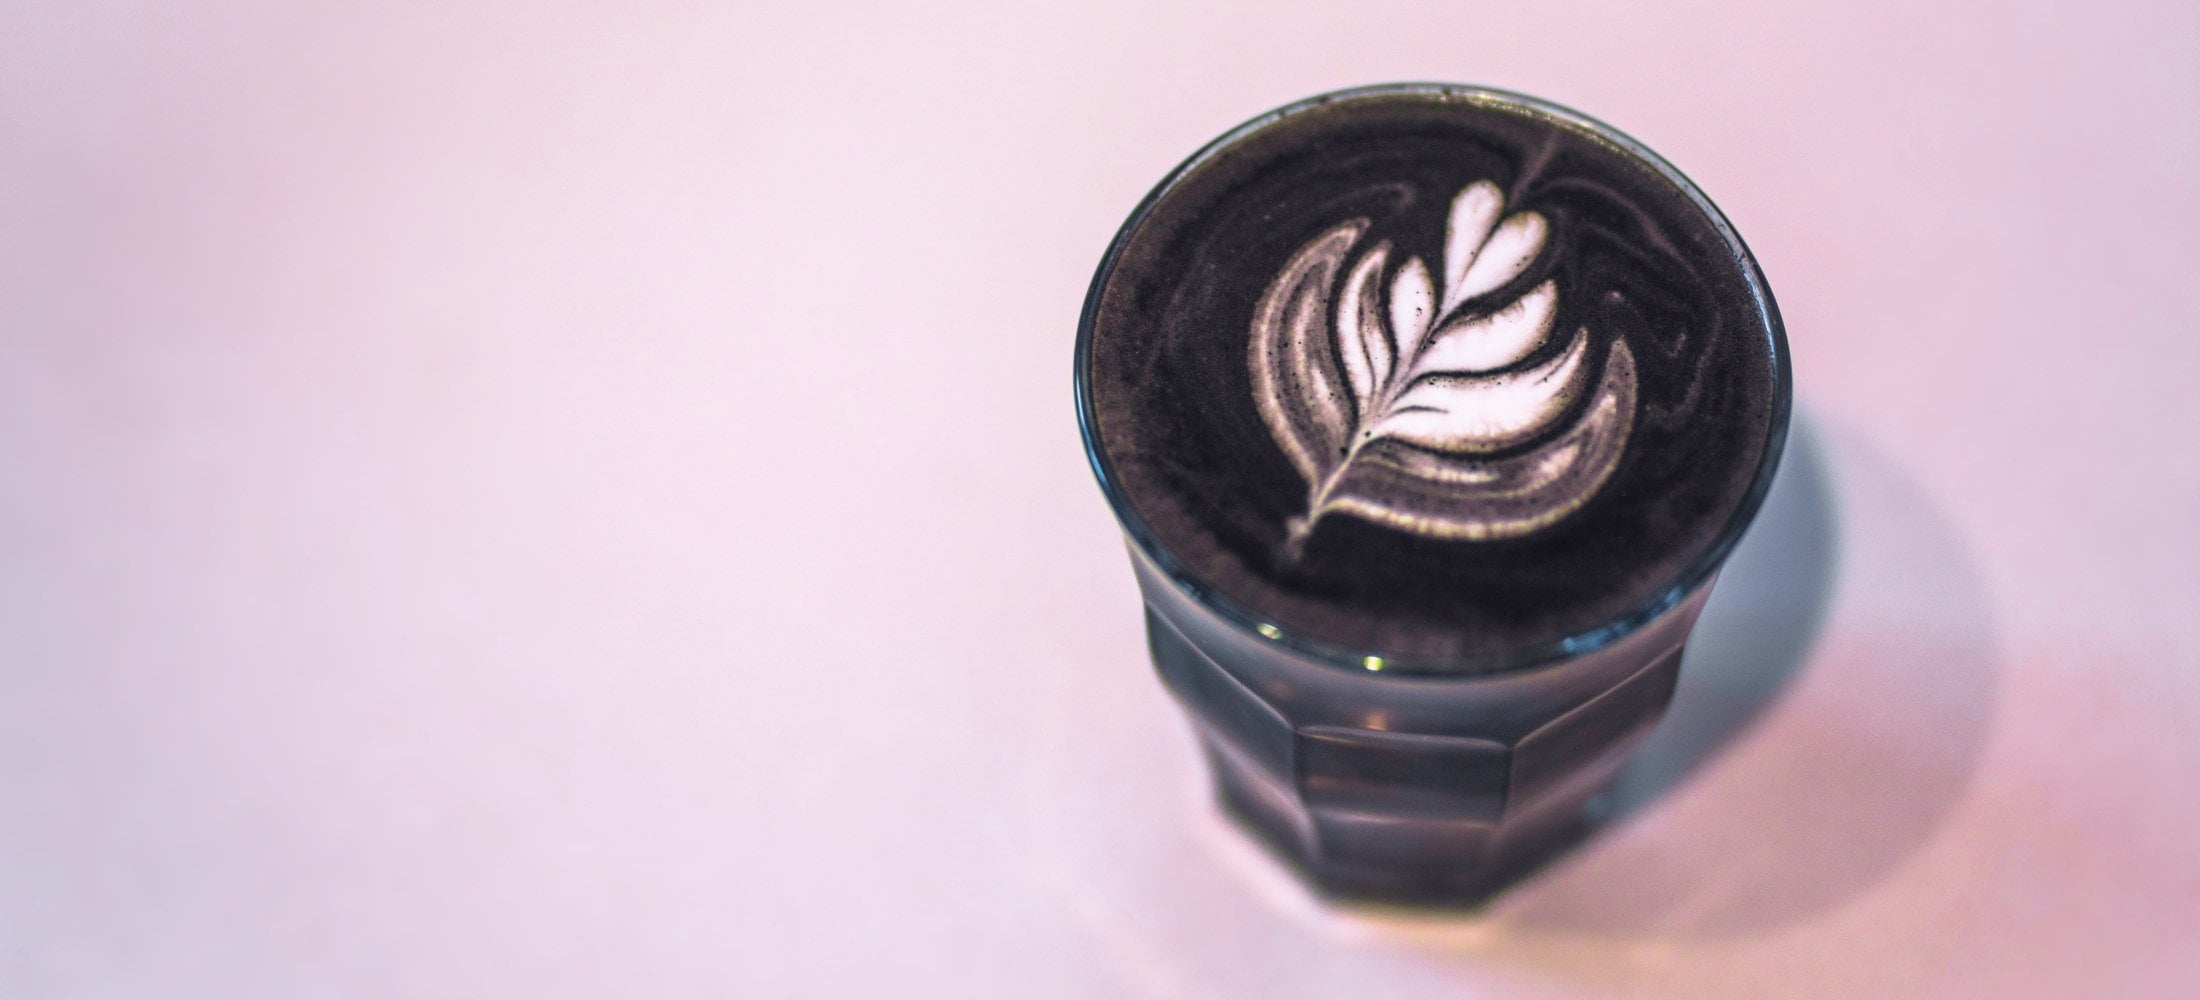 Want to Try Out Adding CBD Oil to Coffee? Here's a Tasty Recipe Guide to CBD Coffee